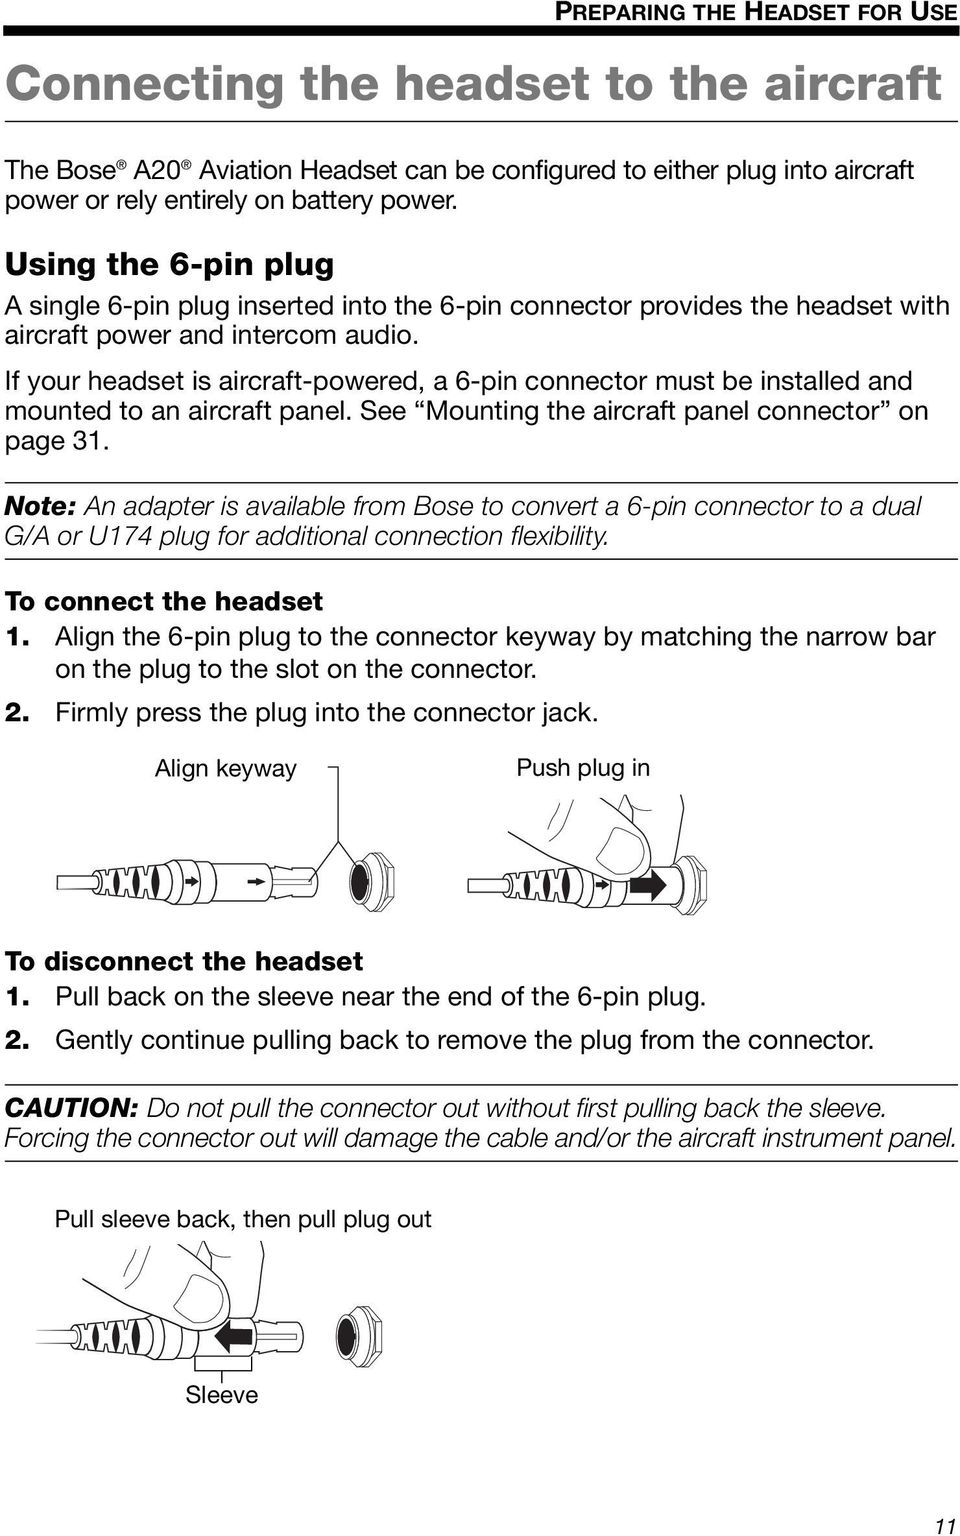 A20 AVIATION HEADSET. Owner s Guide - PDF on